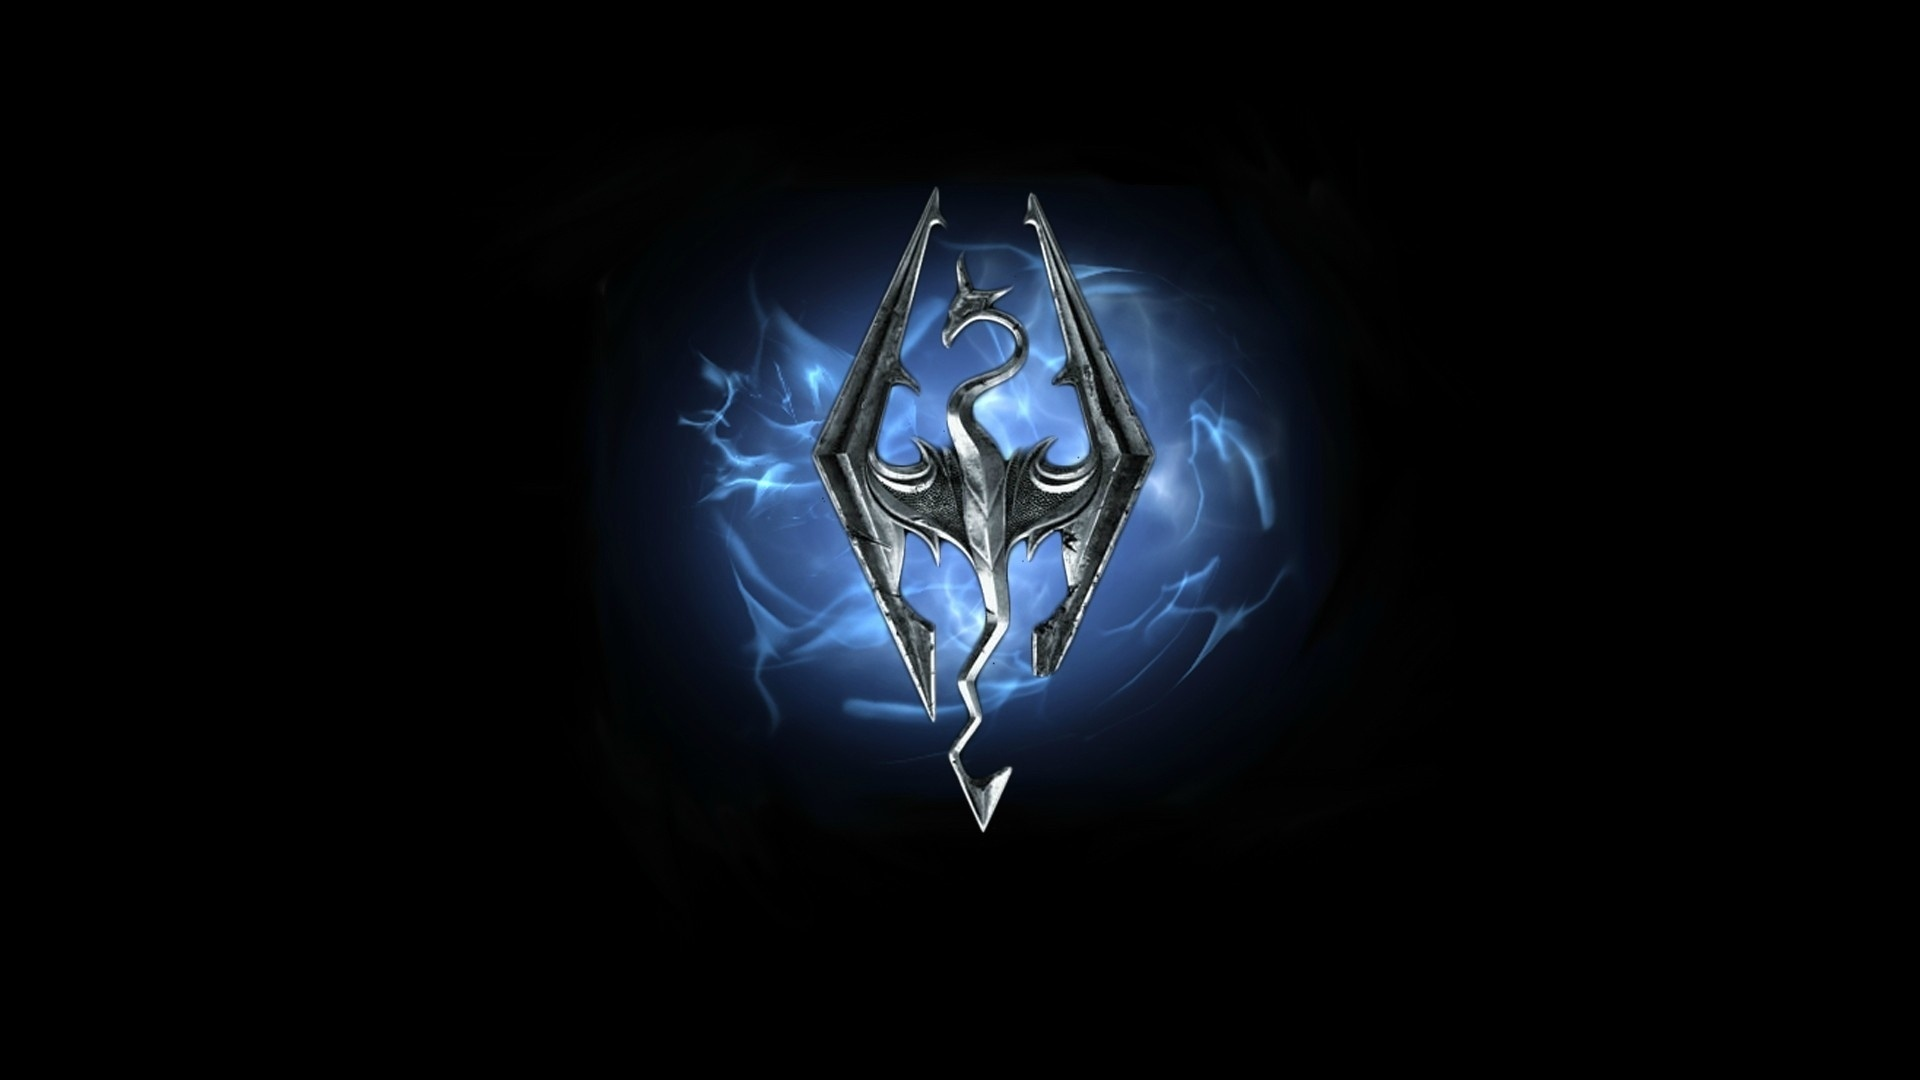 HD Skyrim Wallpapers 1080p background picture